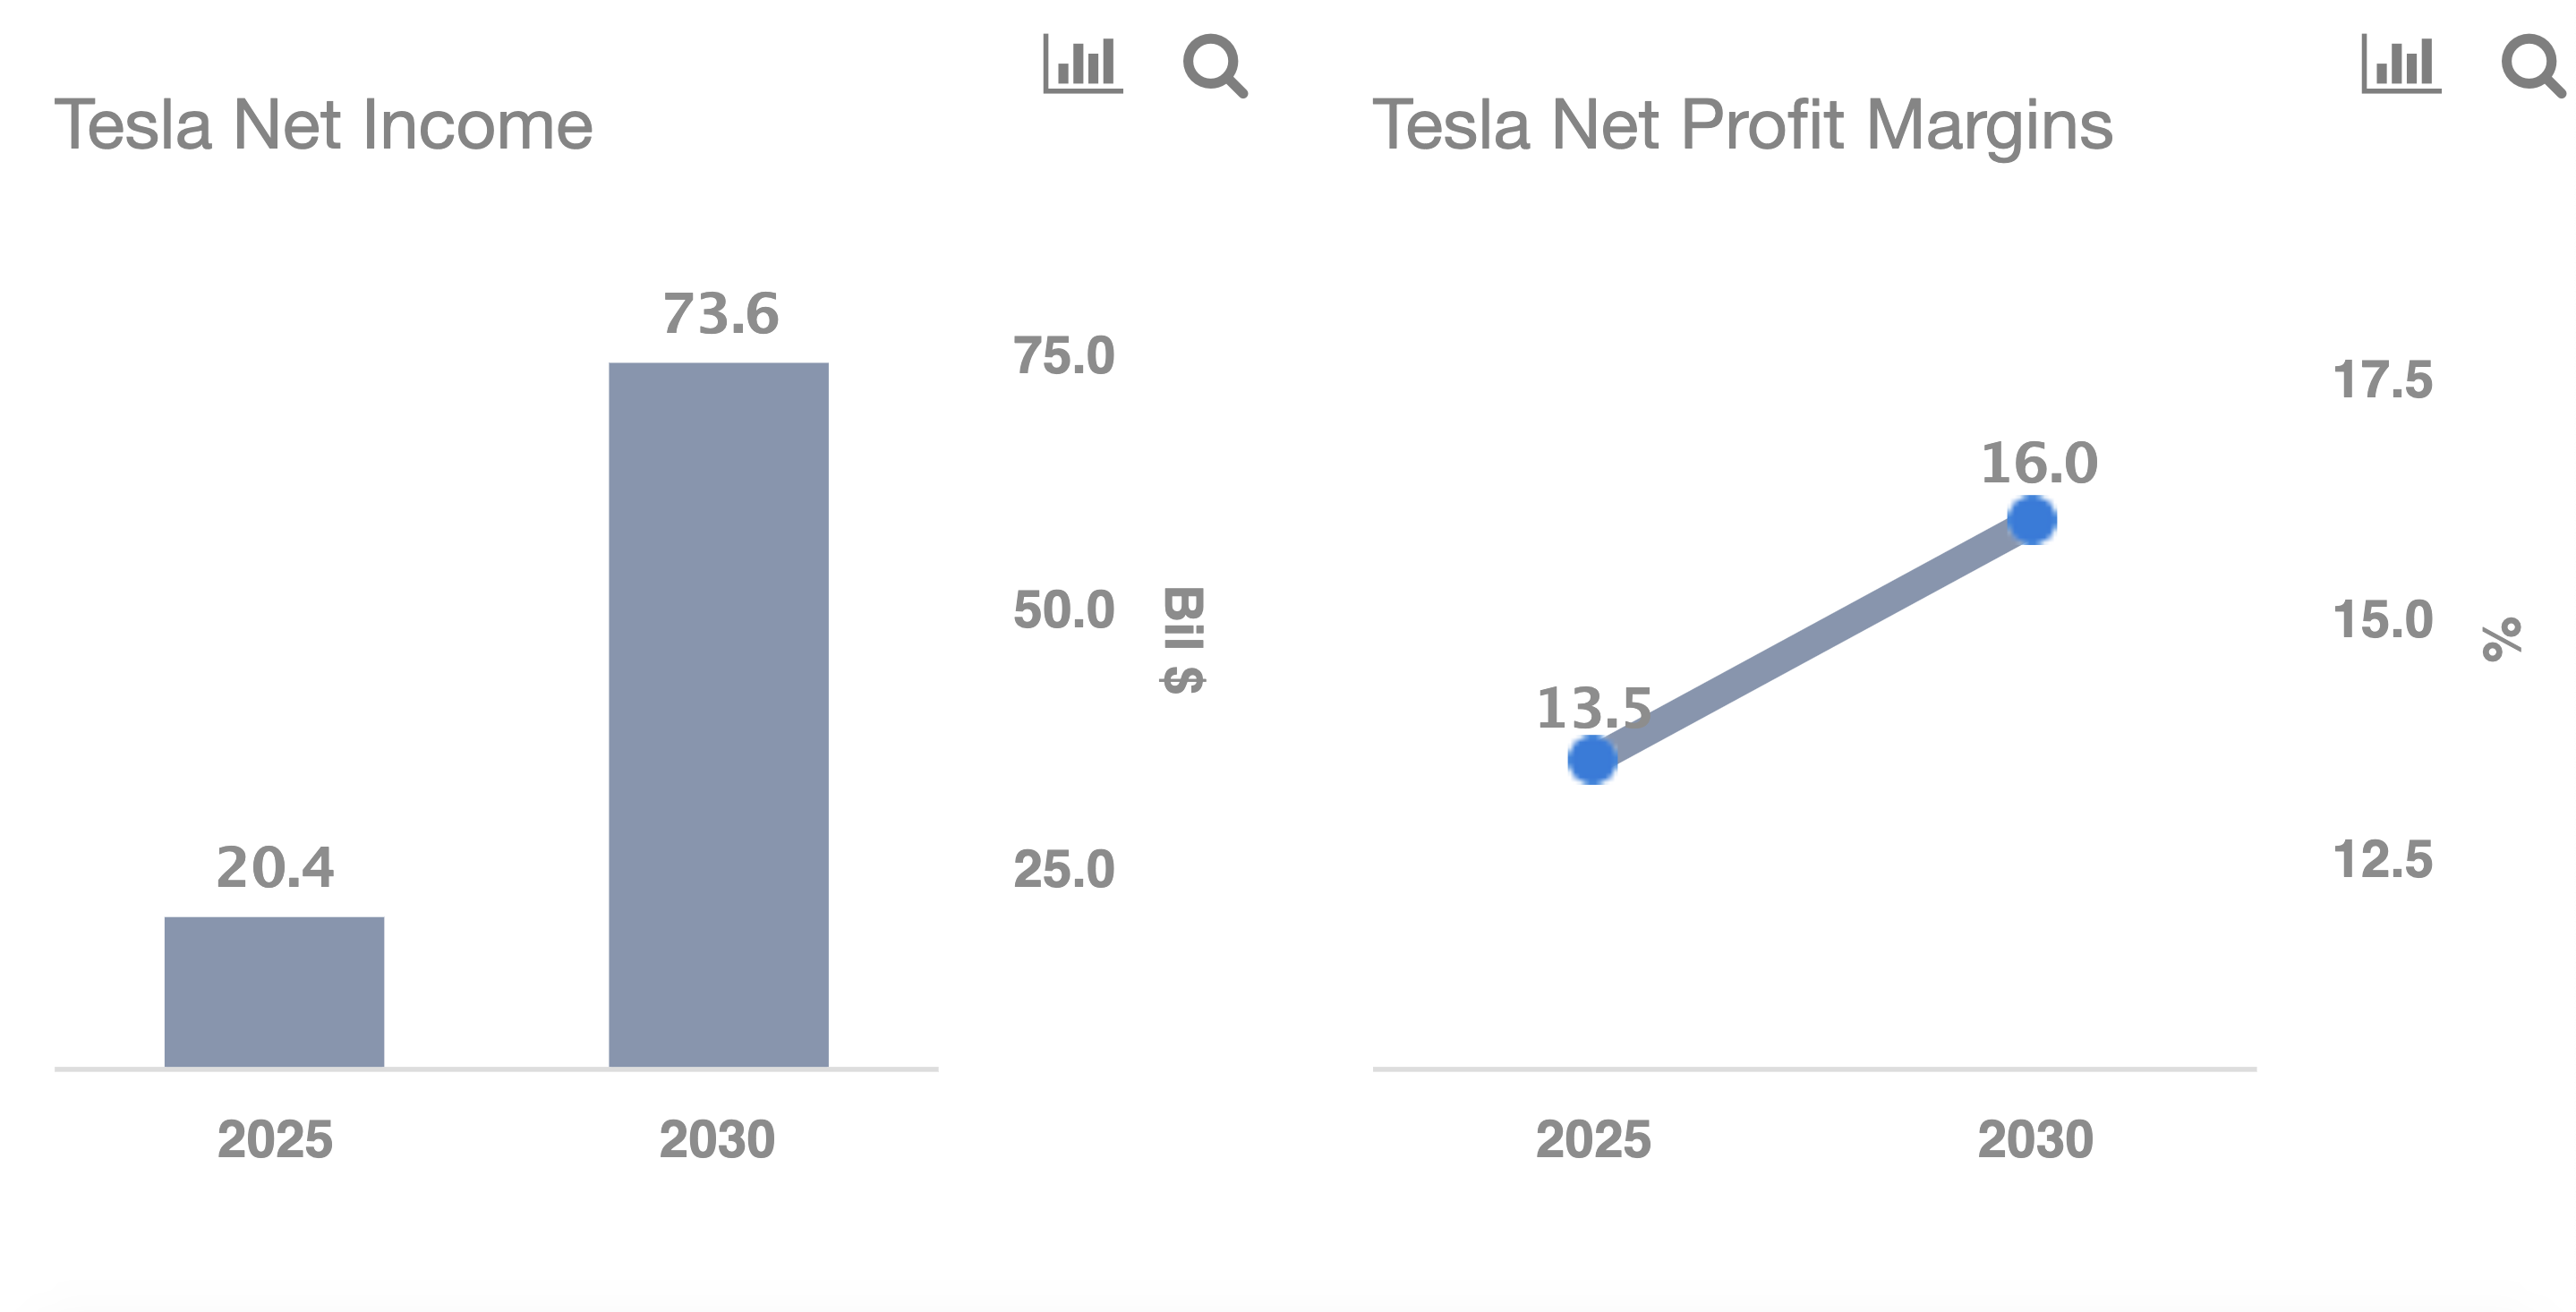 Tesla Inc net income and net profit margin projections